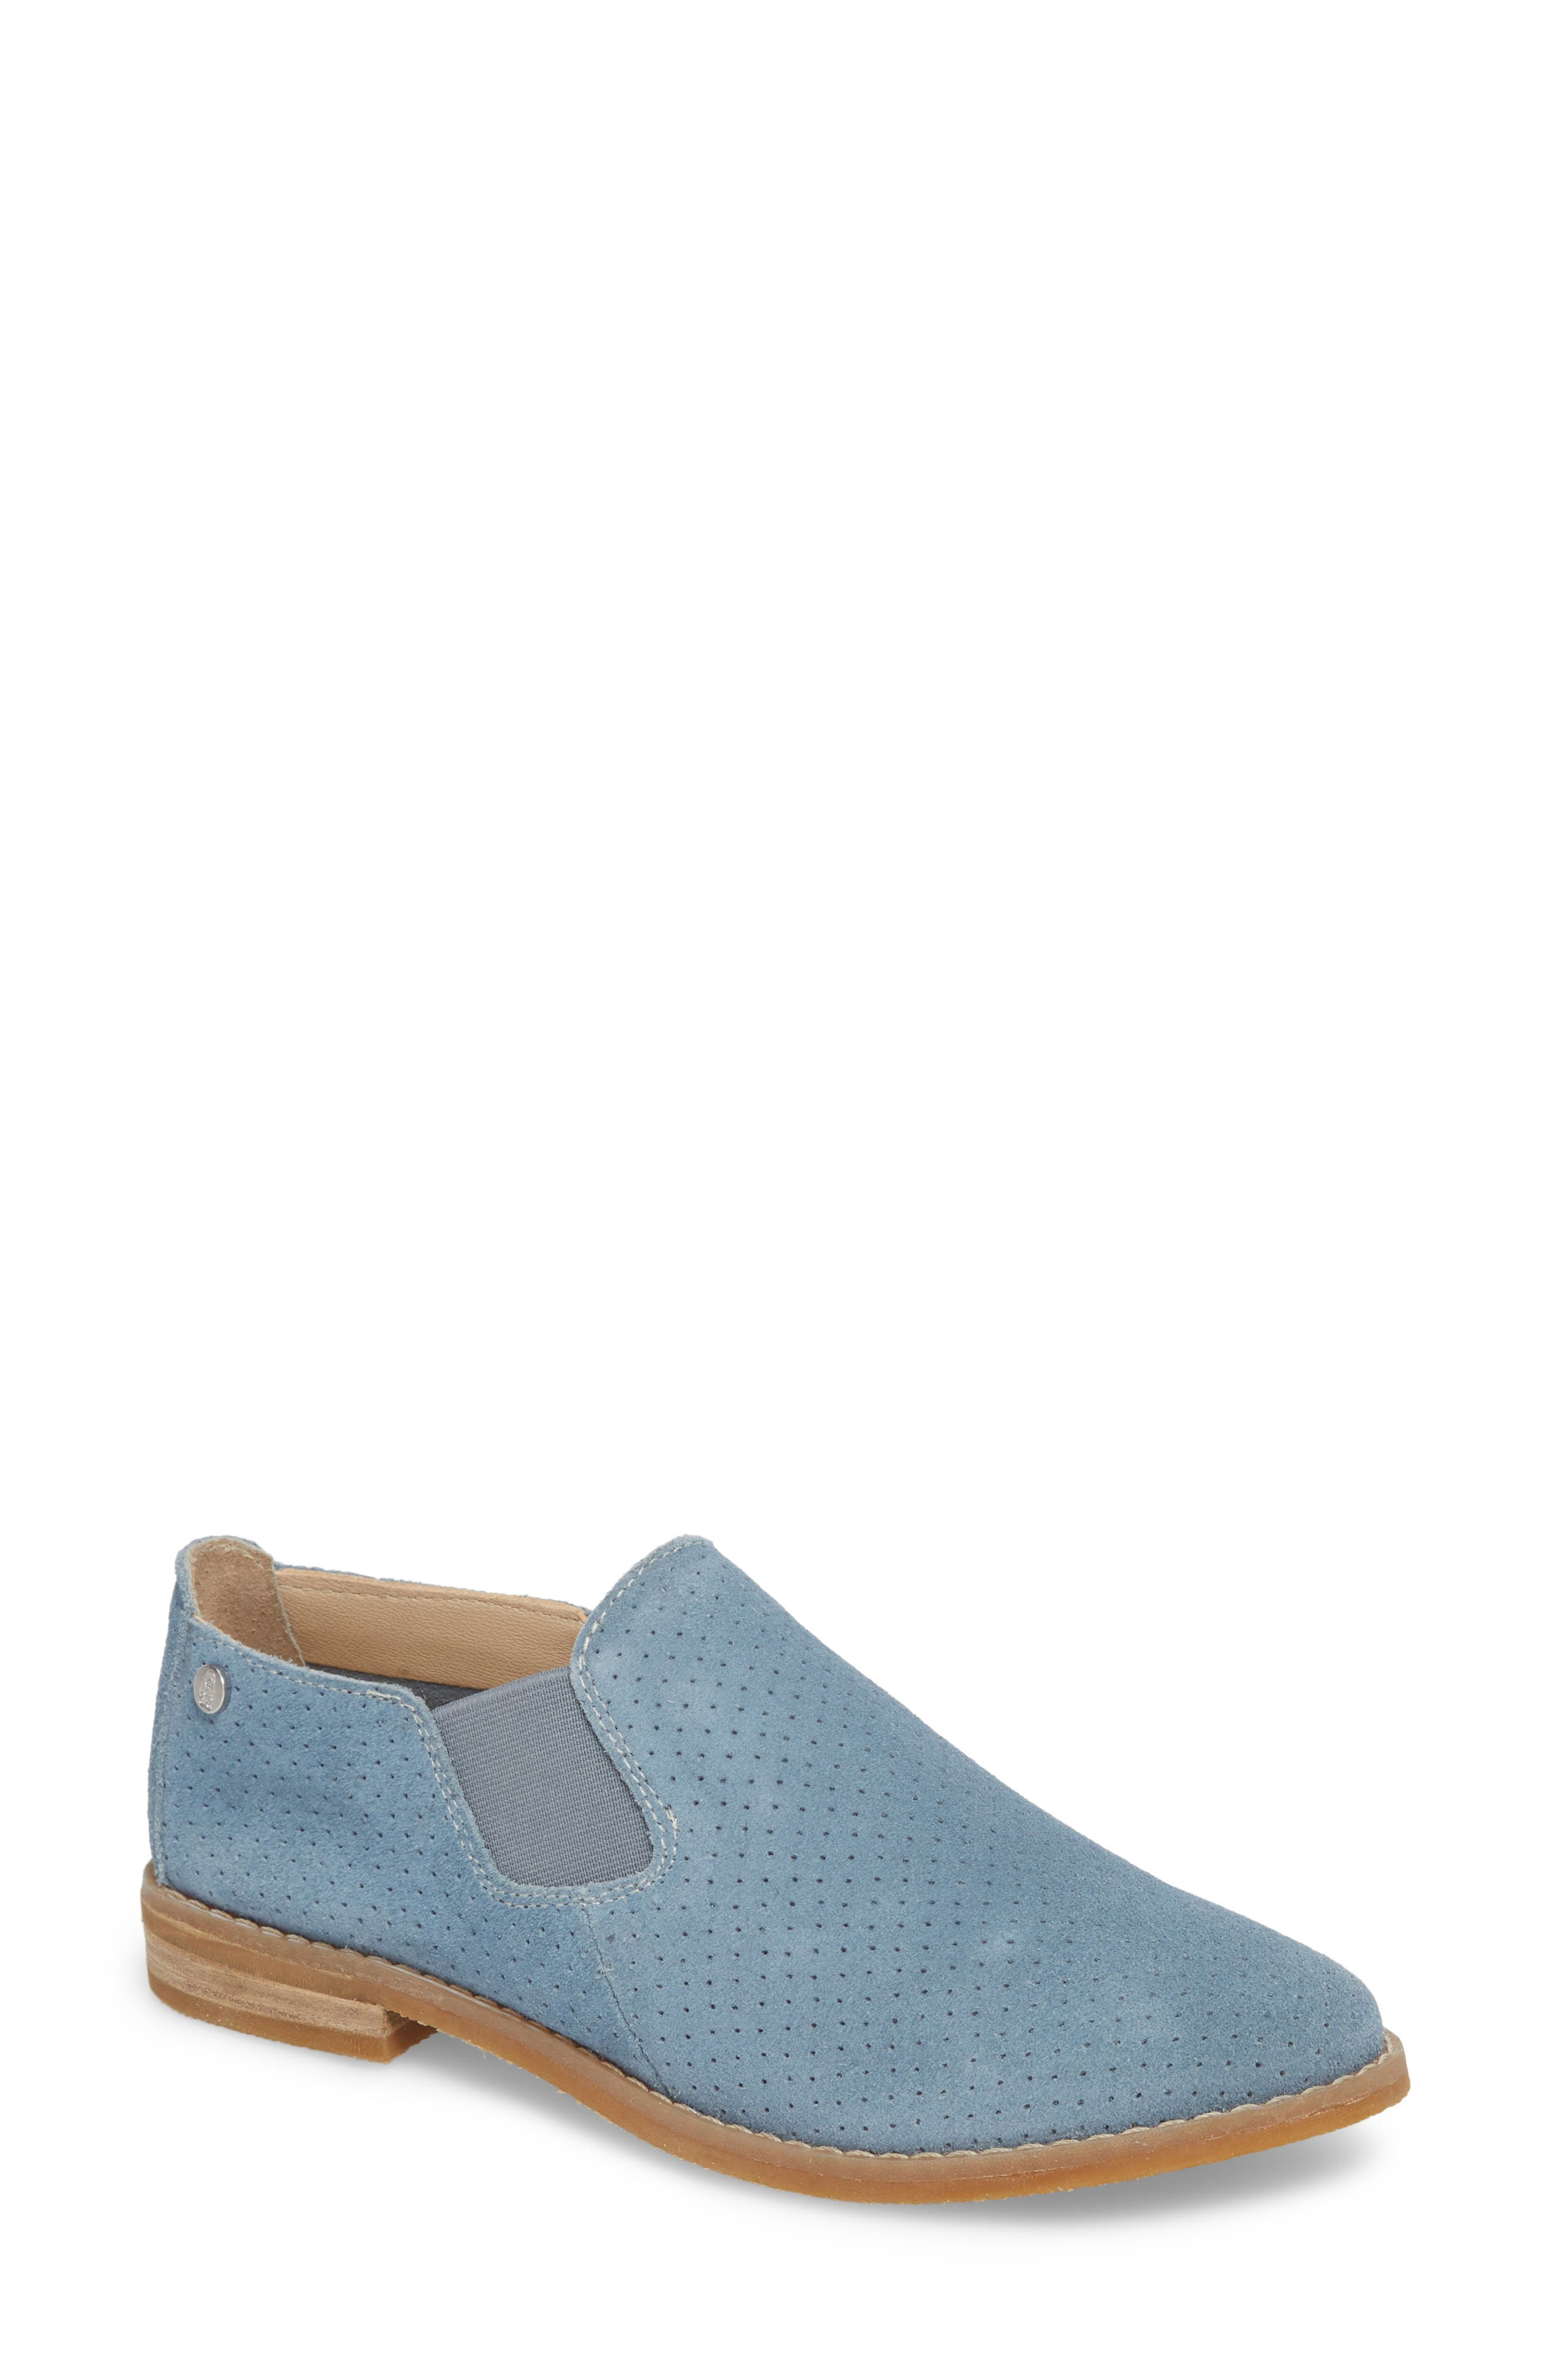 Hush Puppies Analise Clever Slip-On,                             Main thumbnail 1, color,                             VINTAGE INDIGO SUEDE